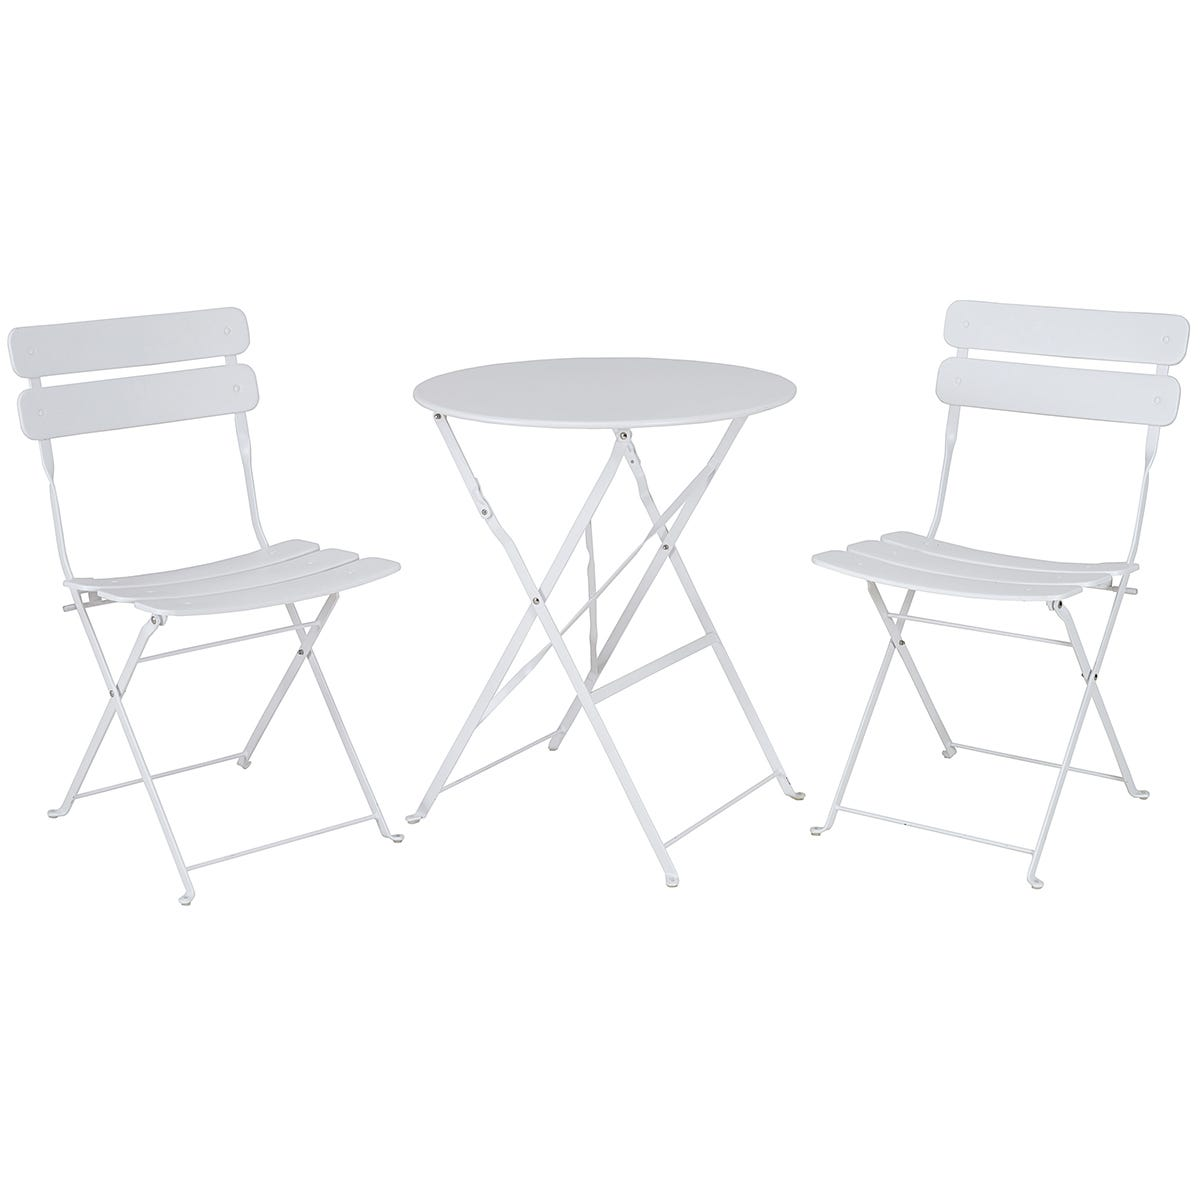 The Outdoor Living Company Annecy 2 Seater Folding White Bistro Set / Table H70 x Dia.60cm